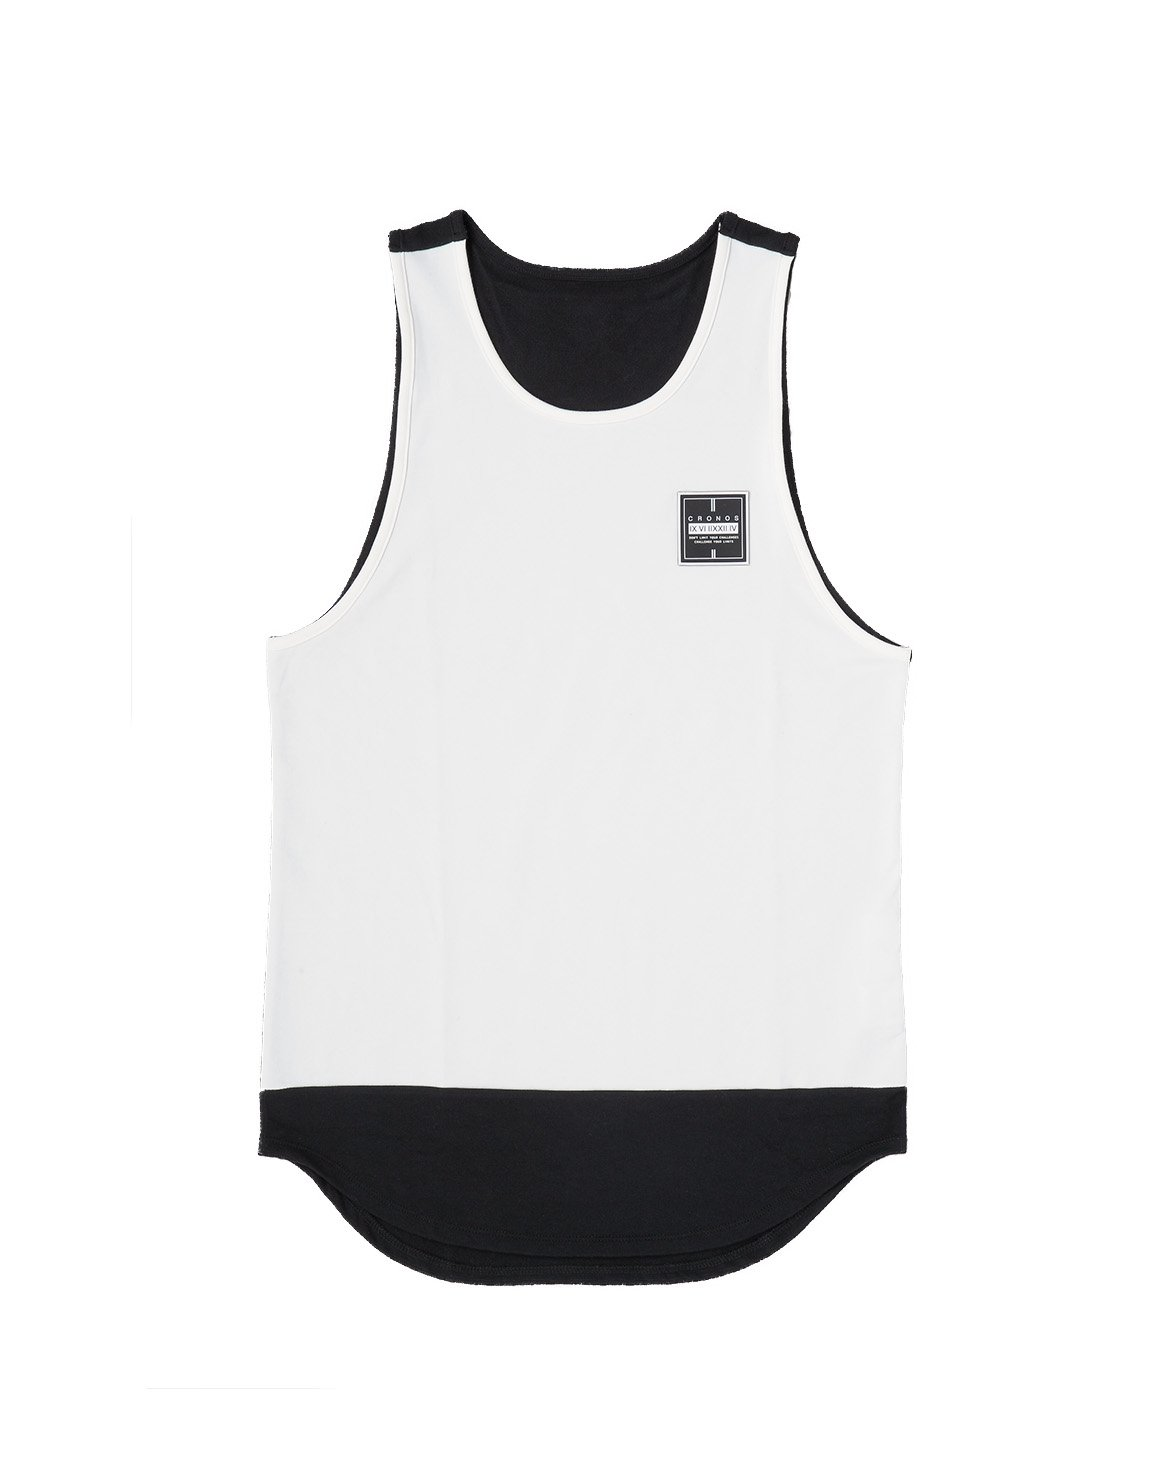 <img class='new_mark_img1' src='https://img.shop-pro.jp/img/new/icons1.gif' style='border:none;display:inline;margin:0px;padding:0px;width:auto;' />CRONOS BI-COLOR TANK TOP 【WHITE】